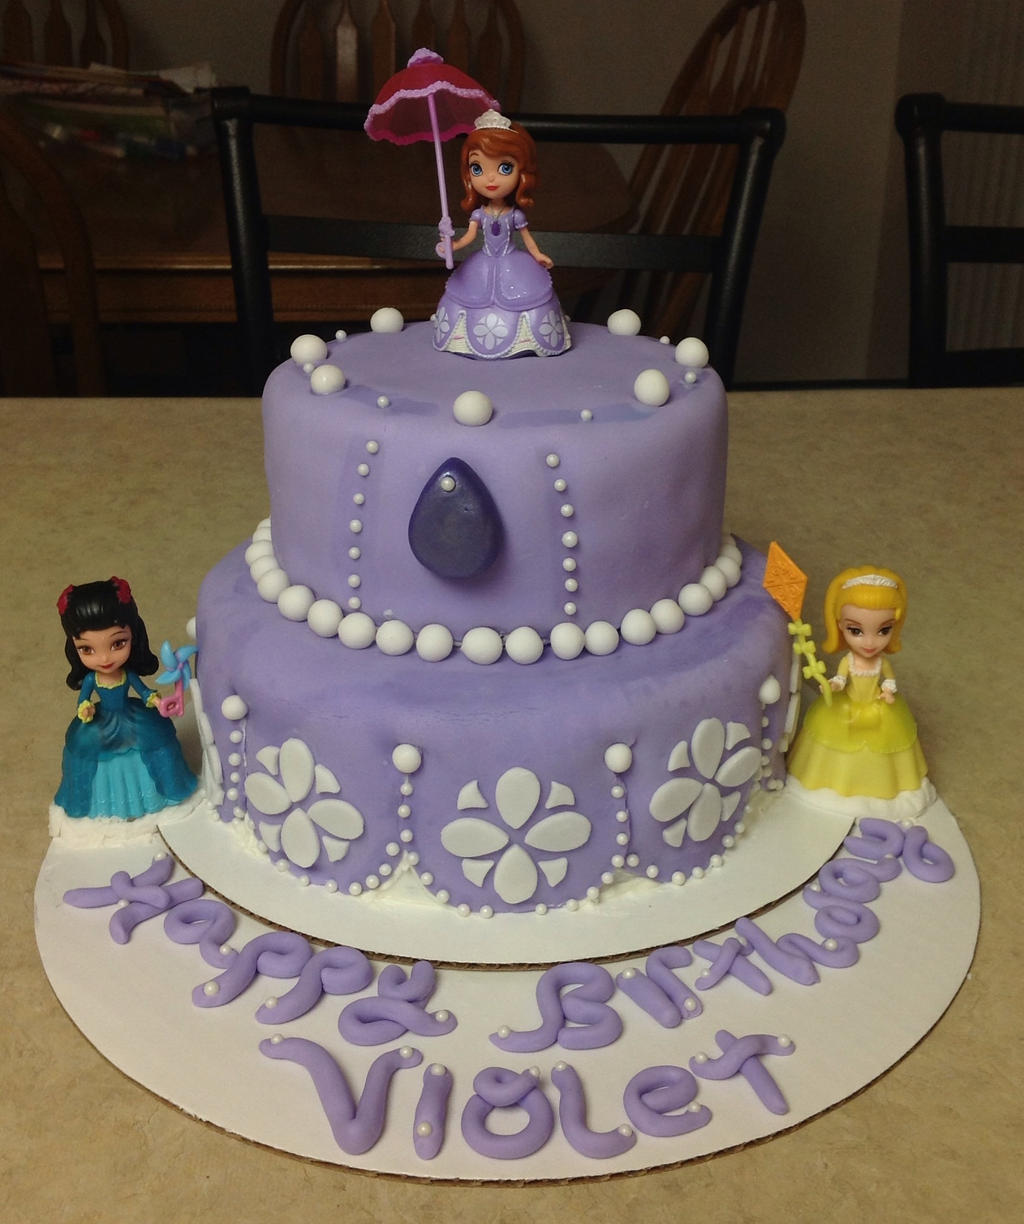 Pictures Of Princess Sofia Cake : Princess Sophia Cakes Pictures to Pin on Pinterest - PinsDaddy